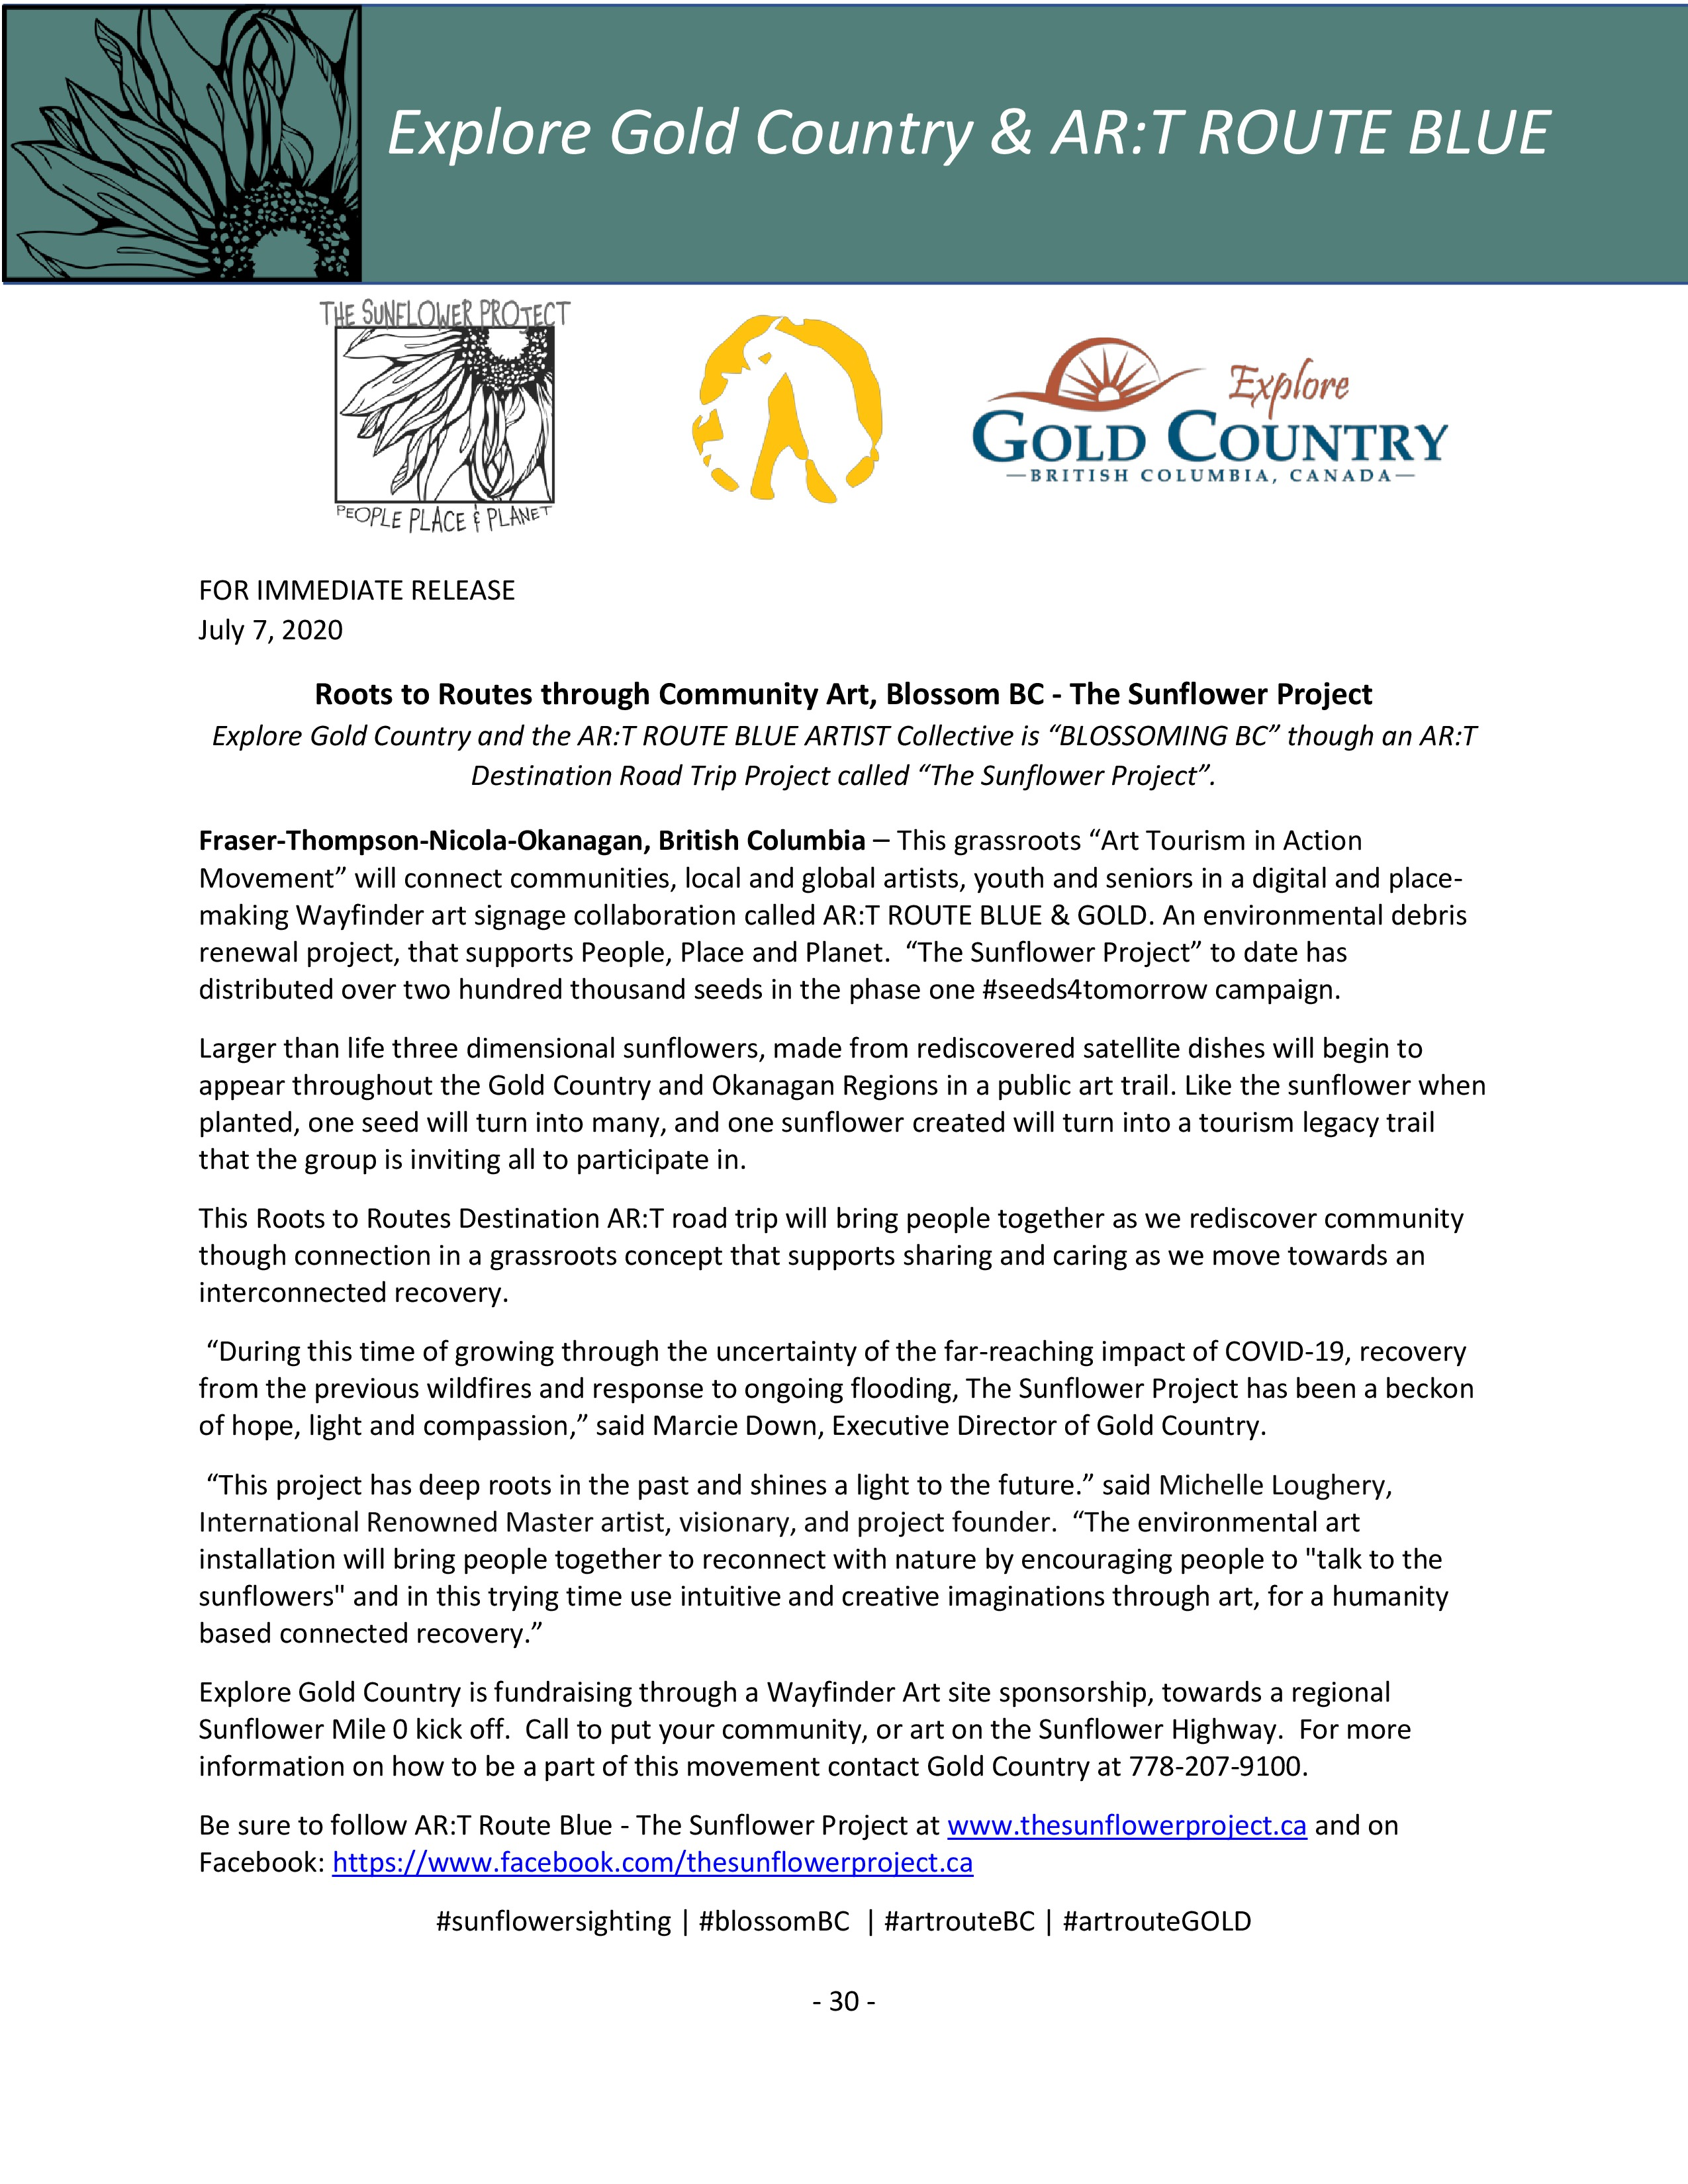 The Sunflower Project Press Release